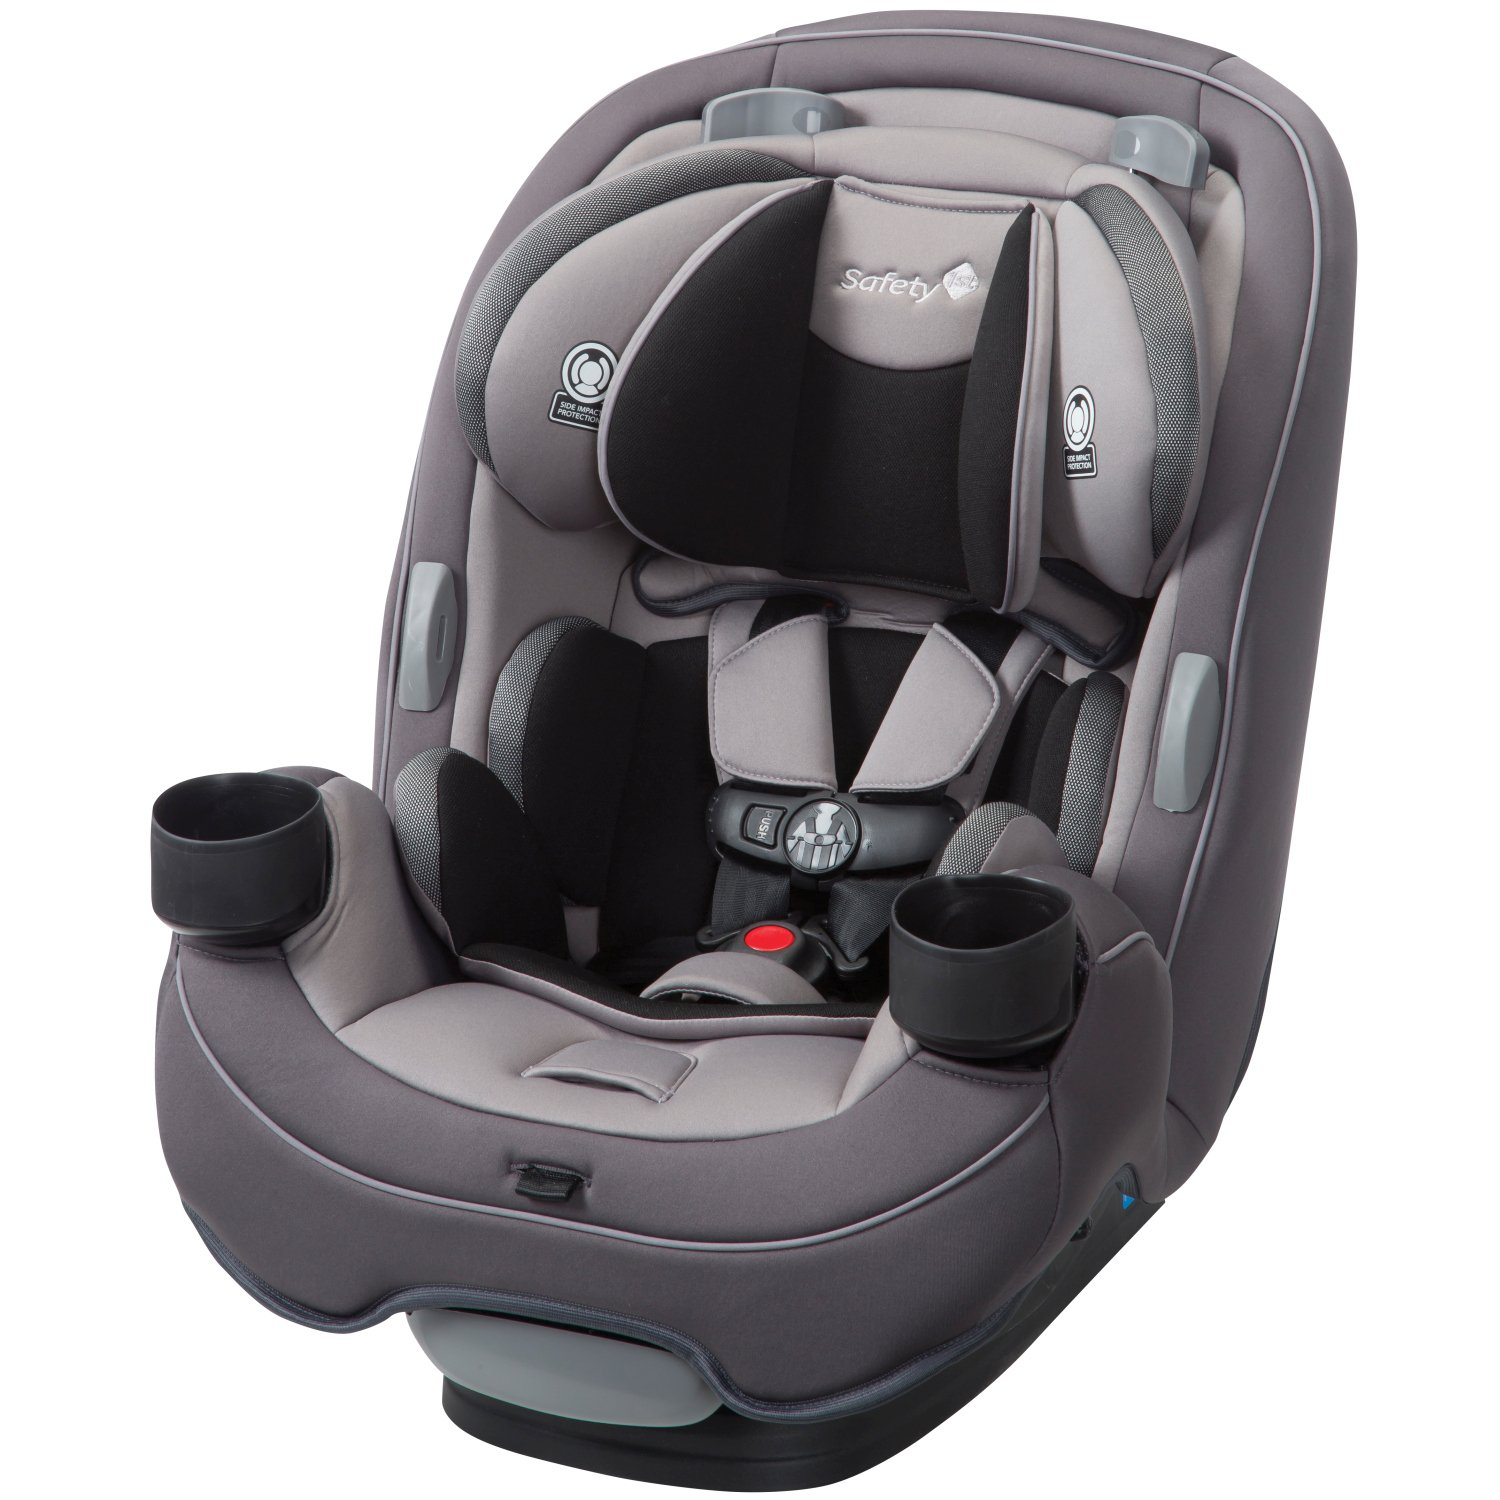 Safety 1st Grow and Go 3-In-1 Car Seat, Boulevard Dorel Juvenile Canada 22682CDDL